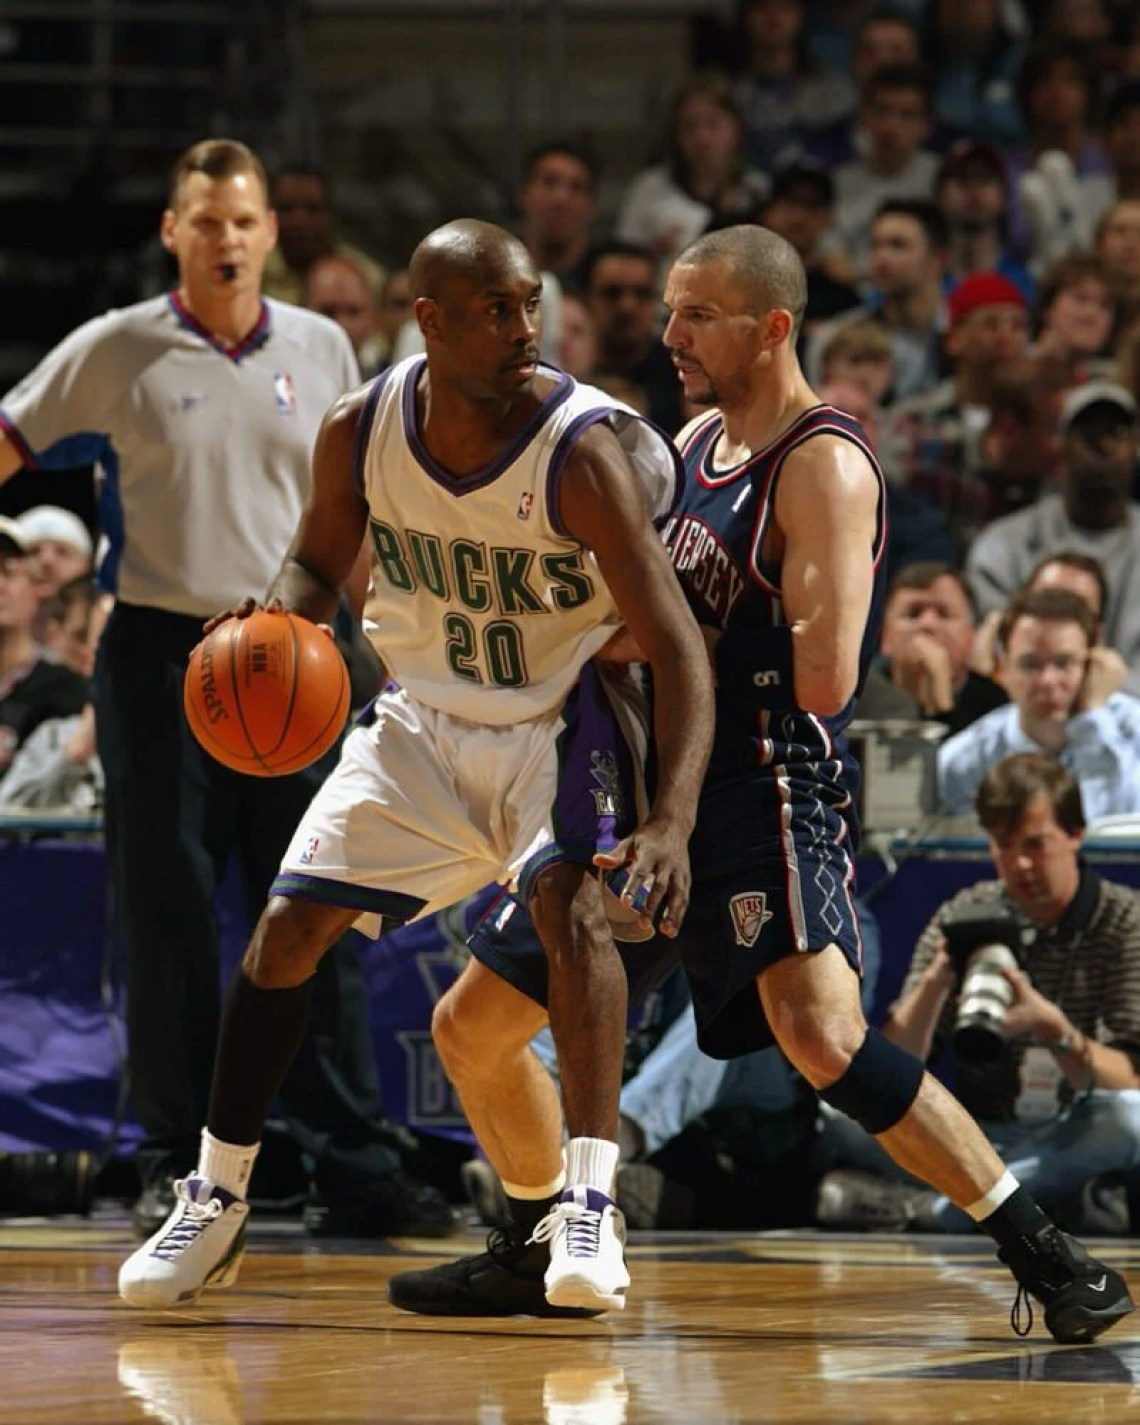 huge discount 9e3b7 e8824 Gary Payton in the Nike Air Ultraflight   Jason Kidd in the Nike Zoom  Flight 2k3 (Photo by Gary Dineen NBAE via Getty Images)